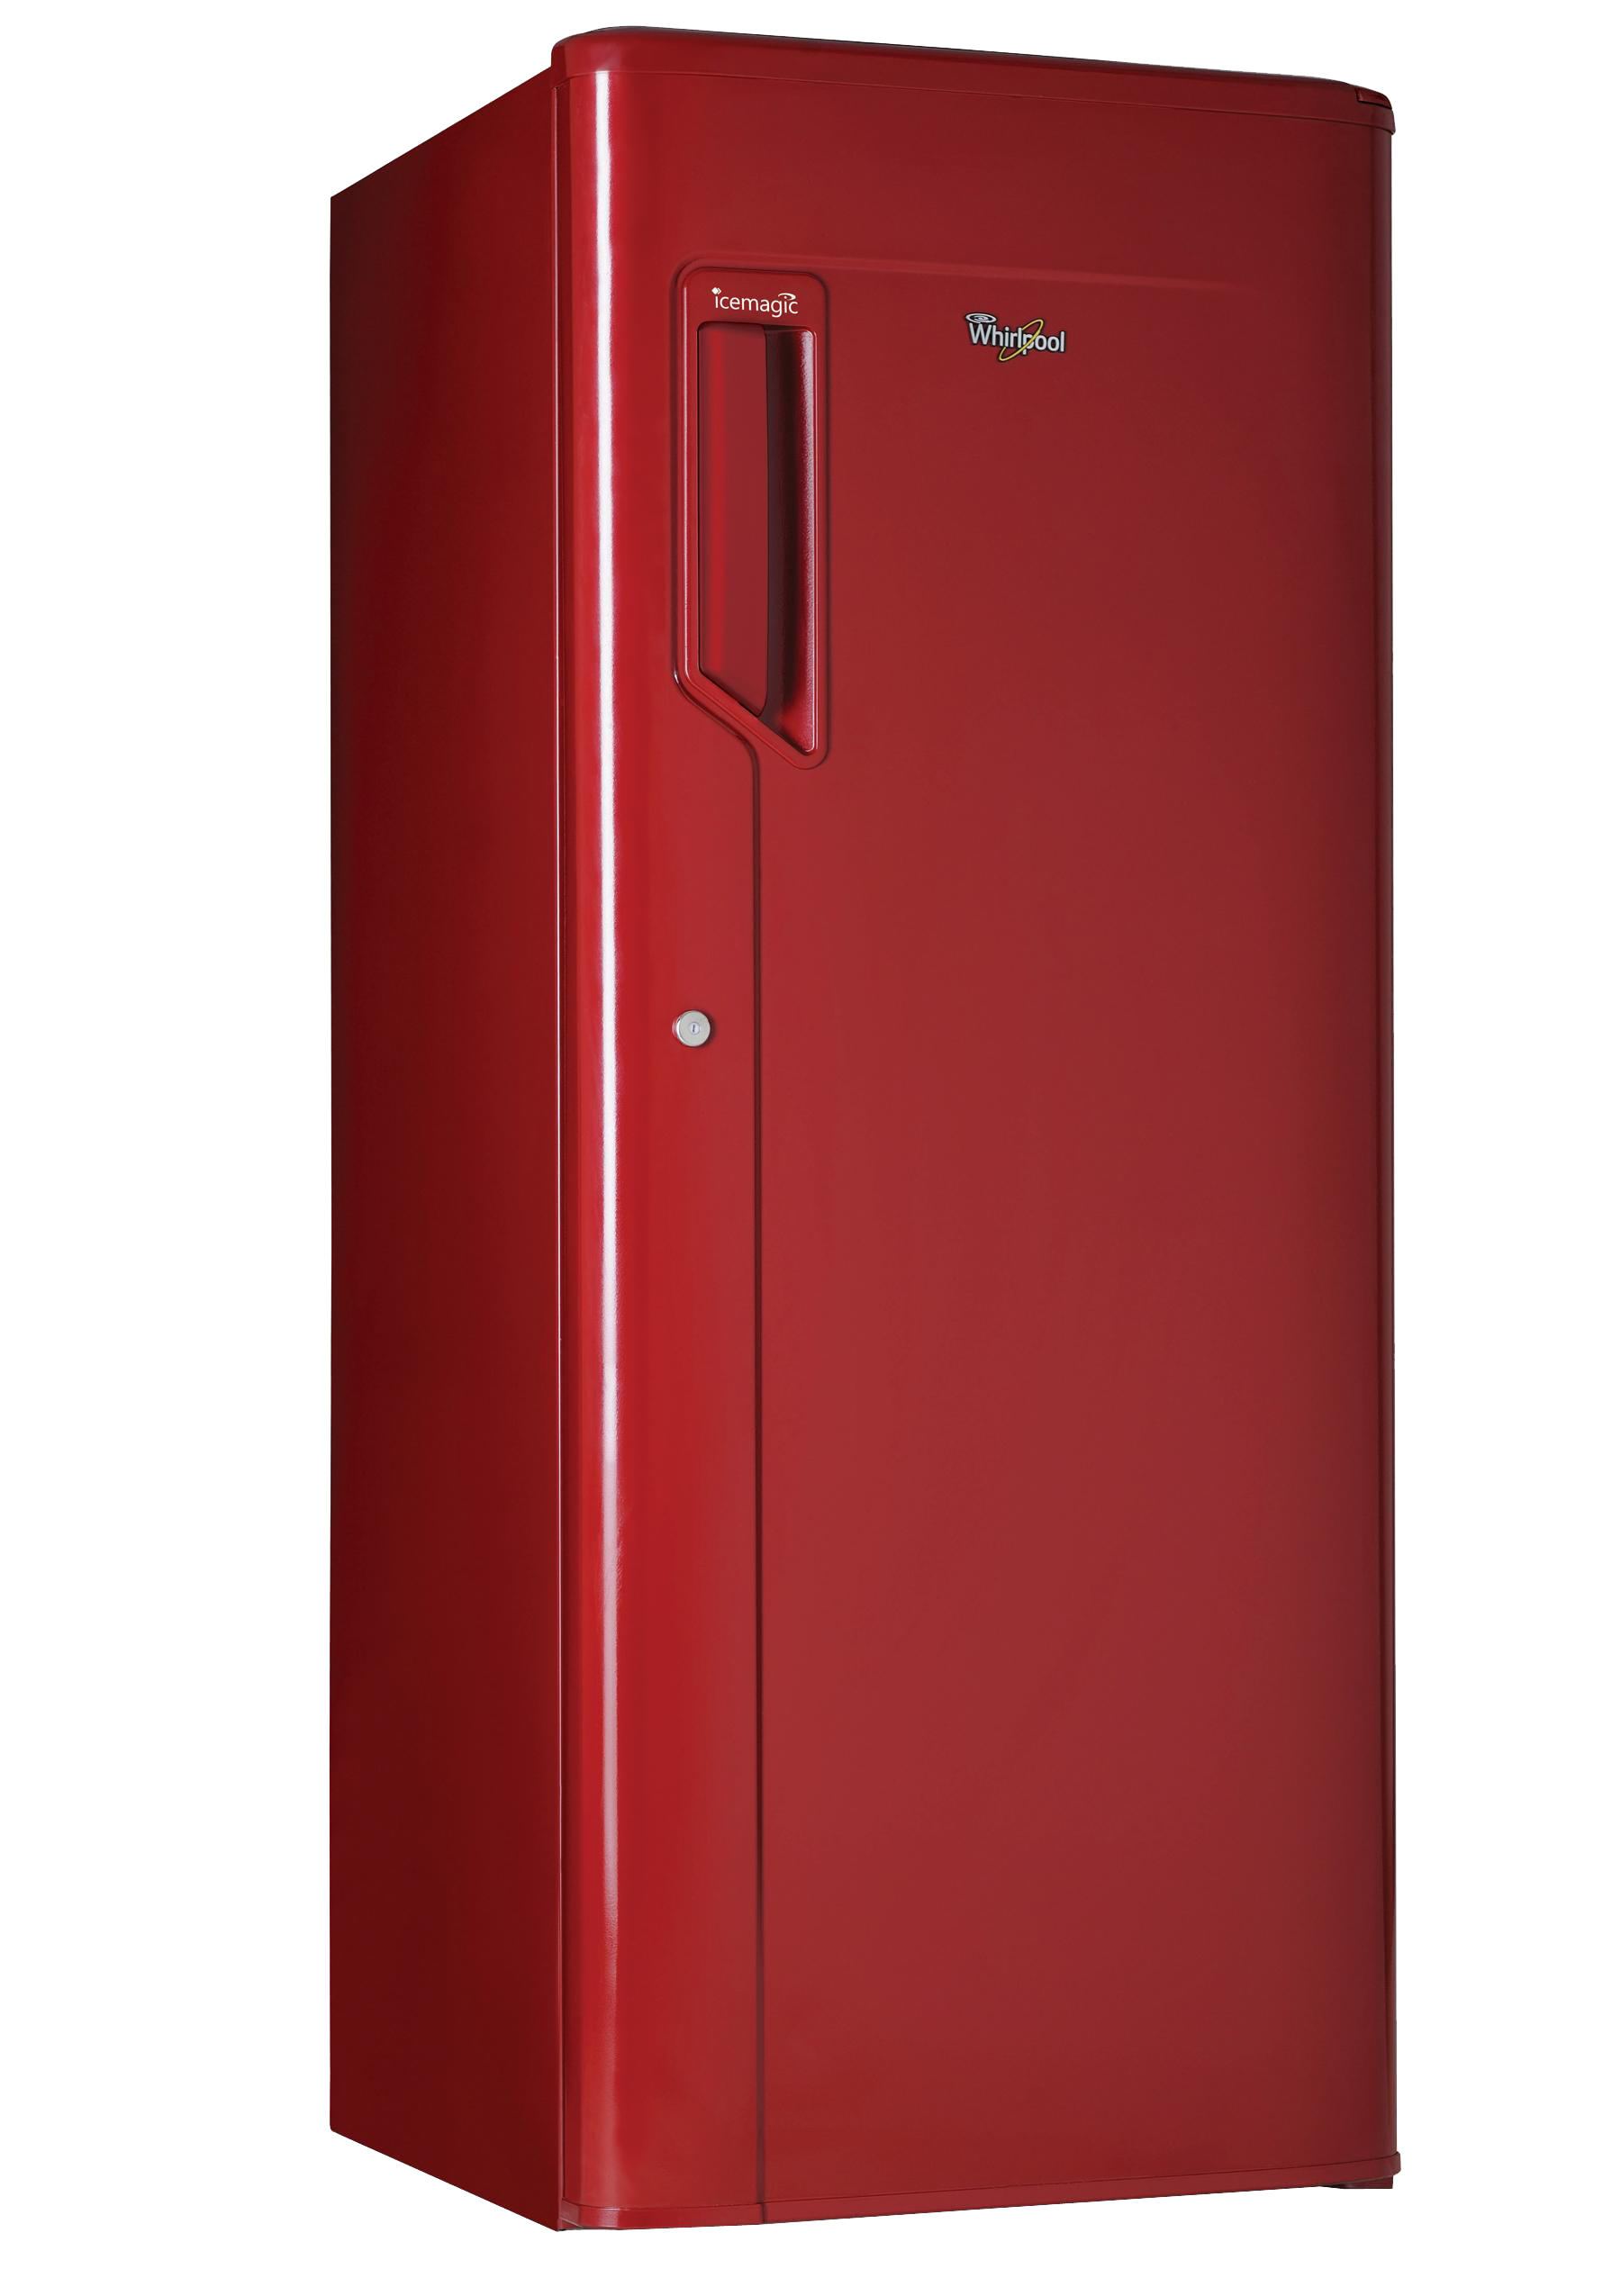 Refrigerator clipart double door. Fridge hd png transparent